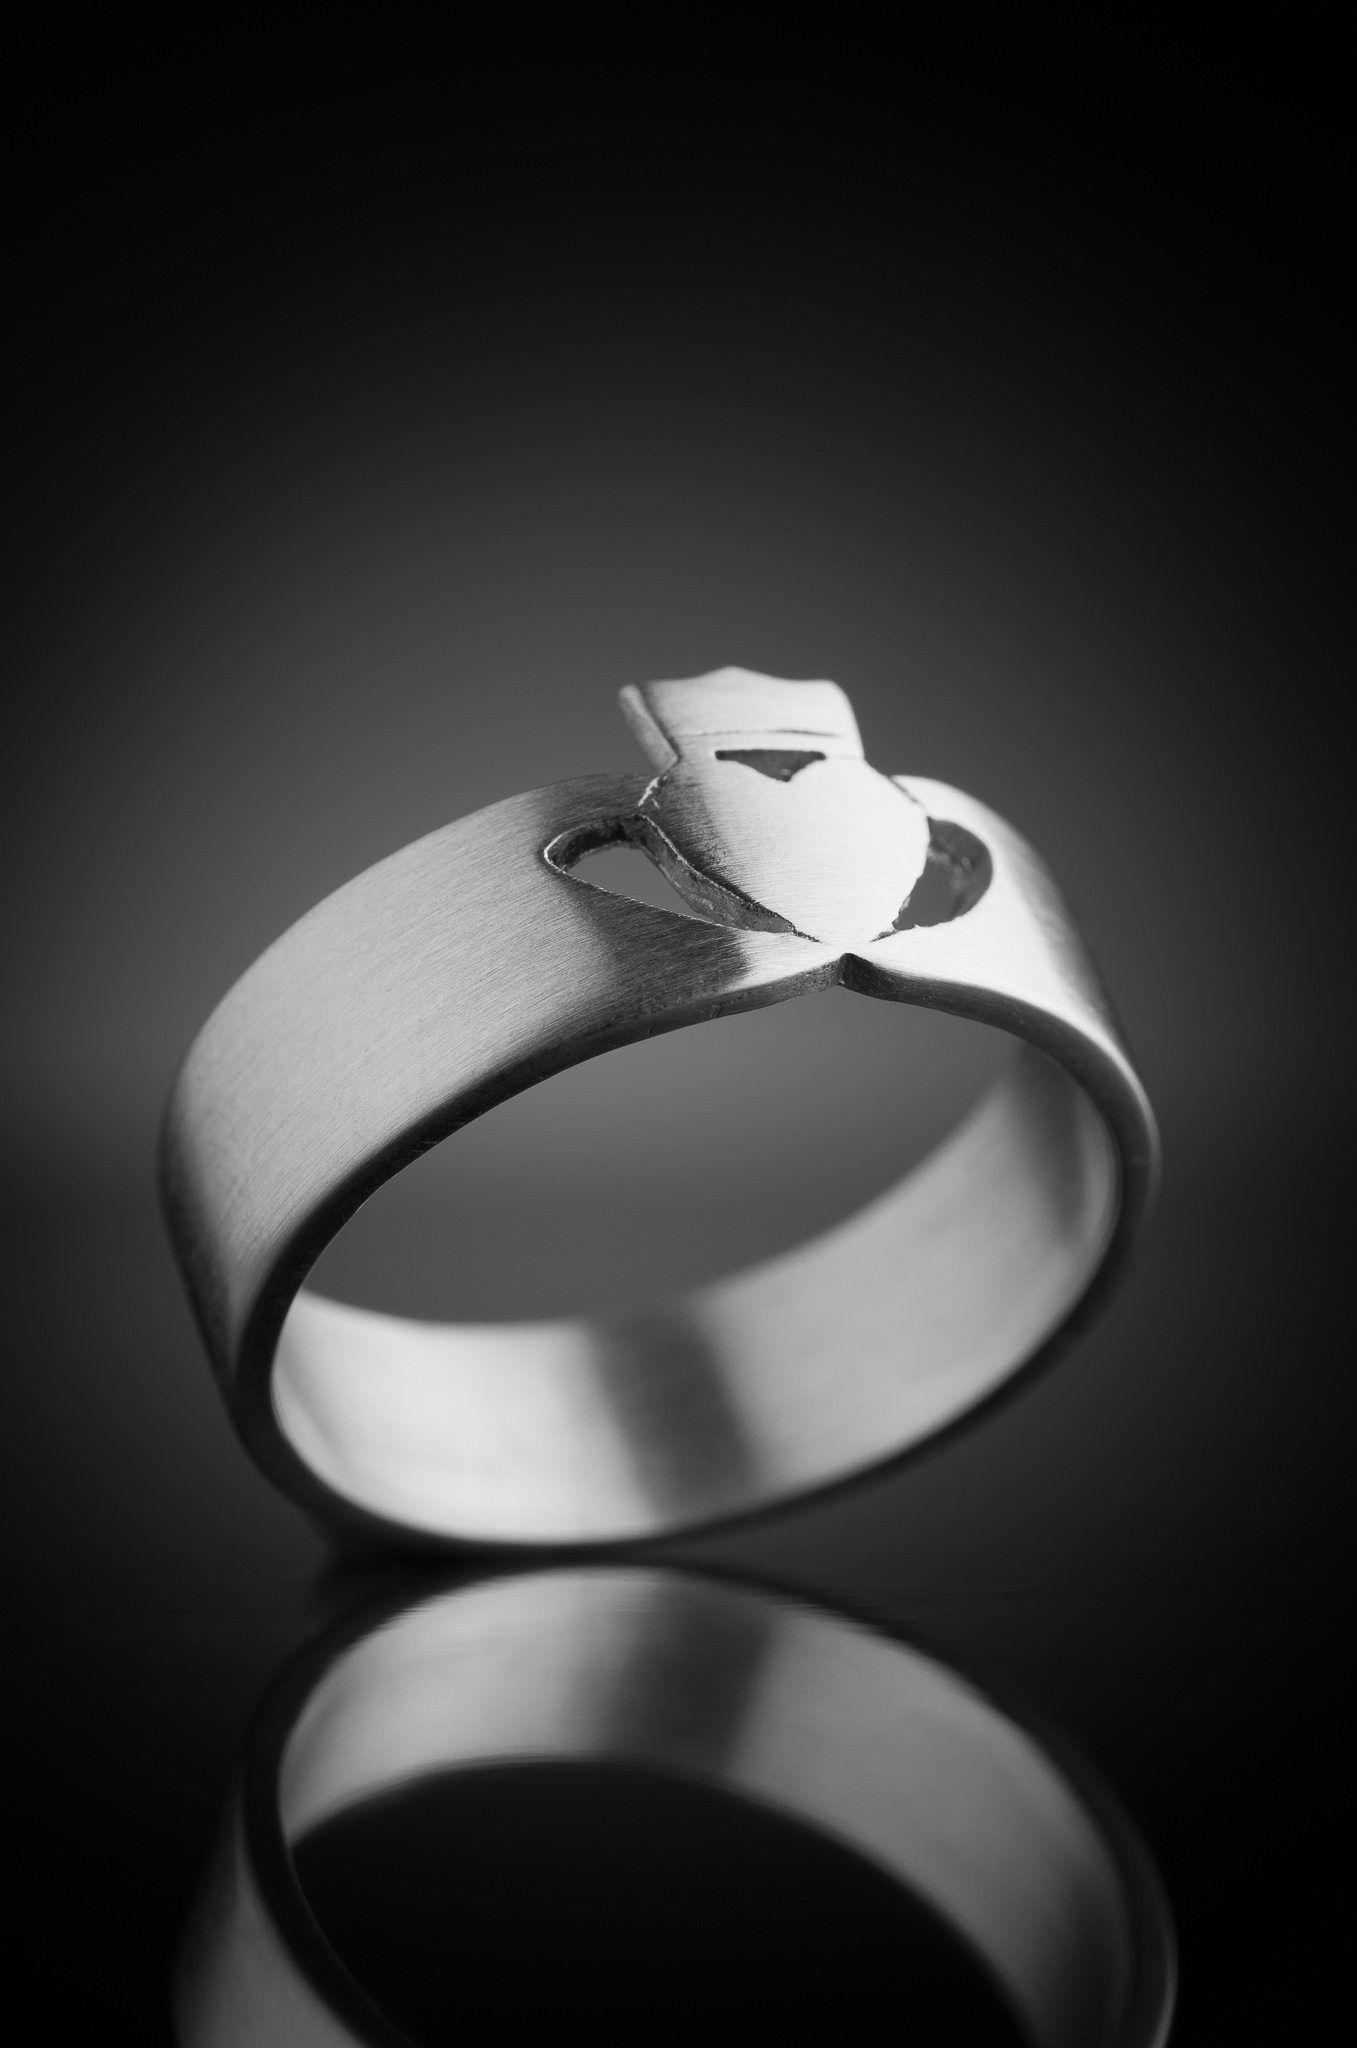 Men's Claddagh Ring In Silver Handmade Bears The Hallmark Of Quality From Irish Assay Dublin Castle Visit Our Online Store Worldwide Delivery: Modern Irish Wedding Rings At Websimilar.org